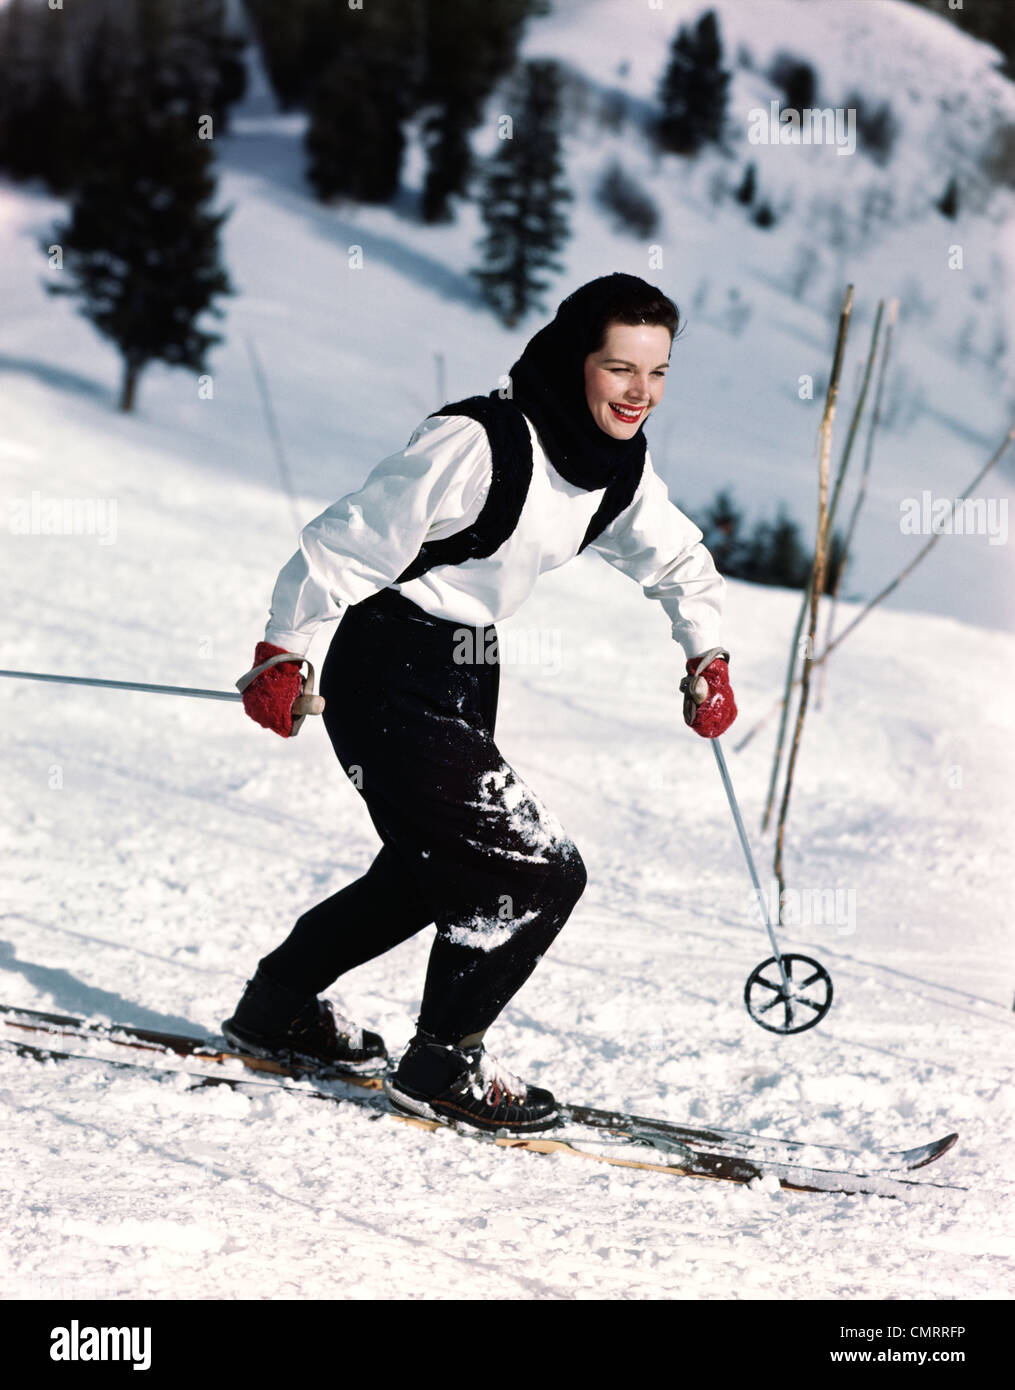 1940s 1950s SMILING WOMAN SKIING WEARING BLUE AND WHITE SKI OUTFIT WITH RED  GLOVES